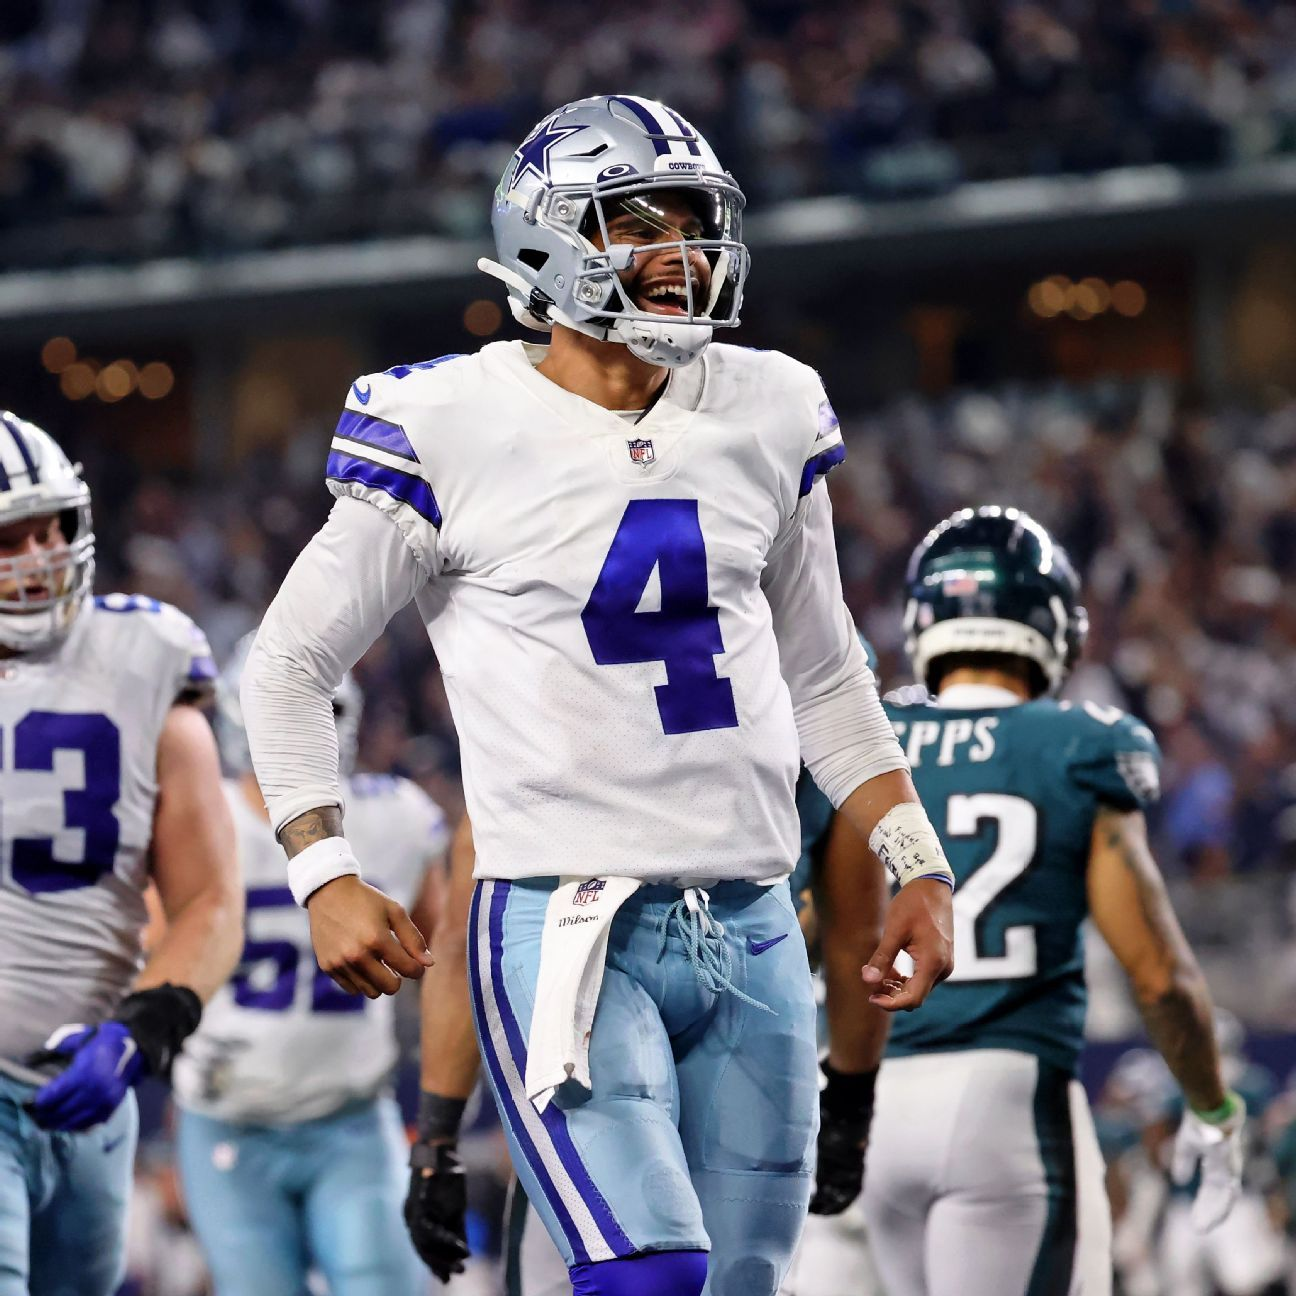 Dallas Cowboys QB Dak Prescott says he's playing at career-best level after 'special' return to AT&T Stadium